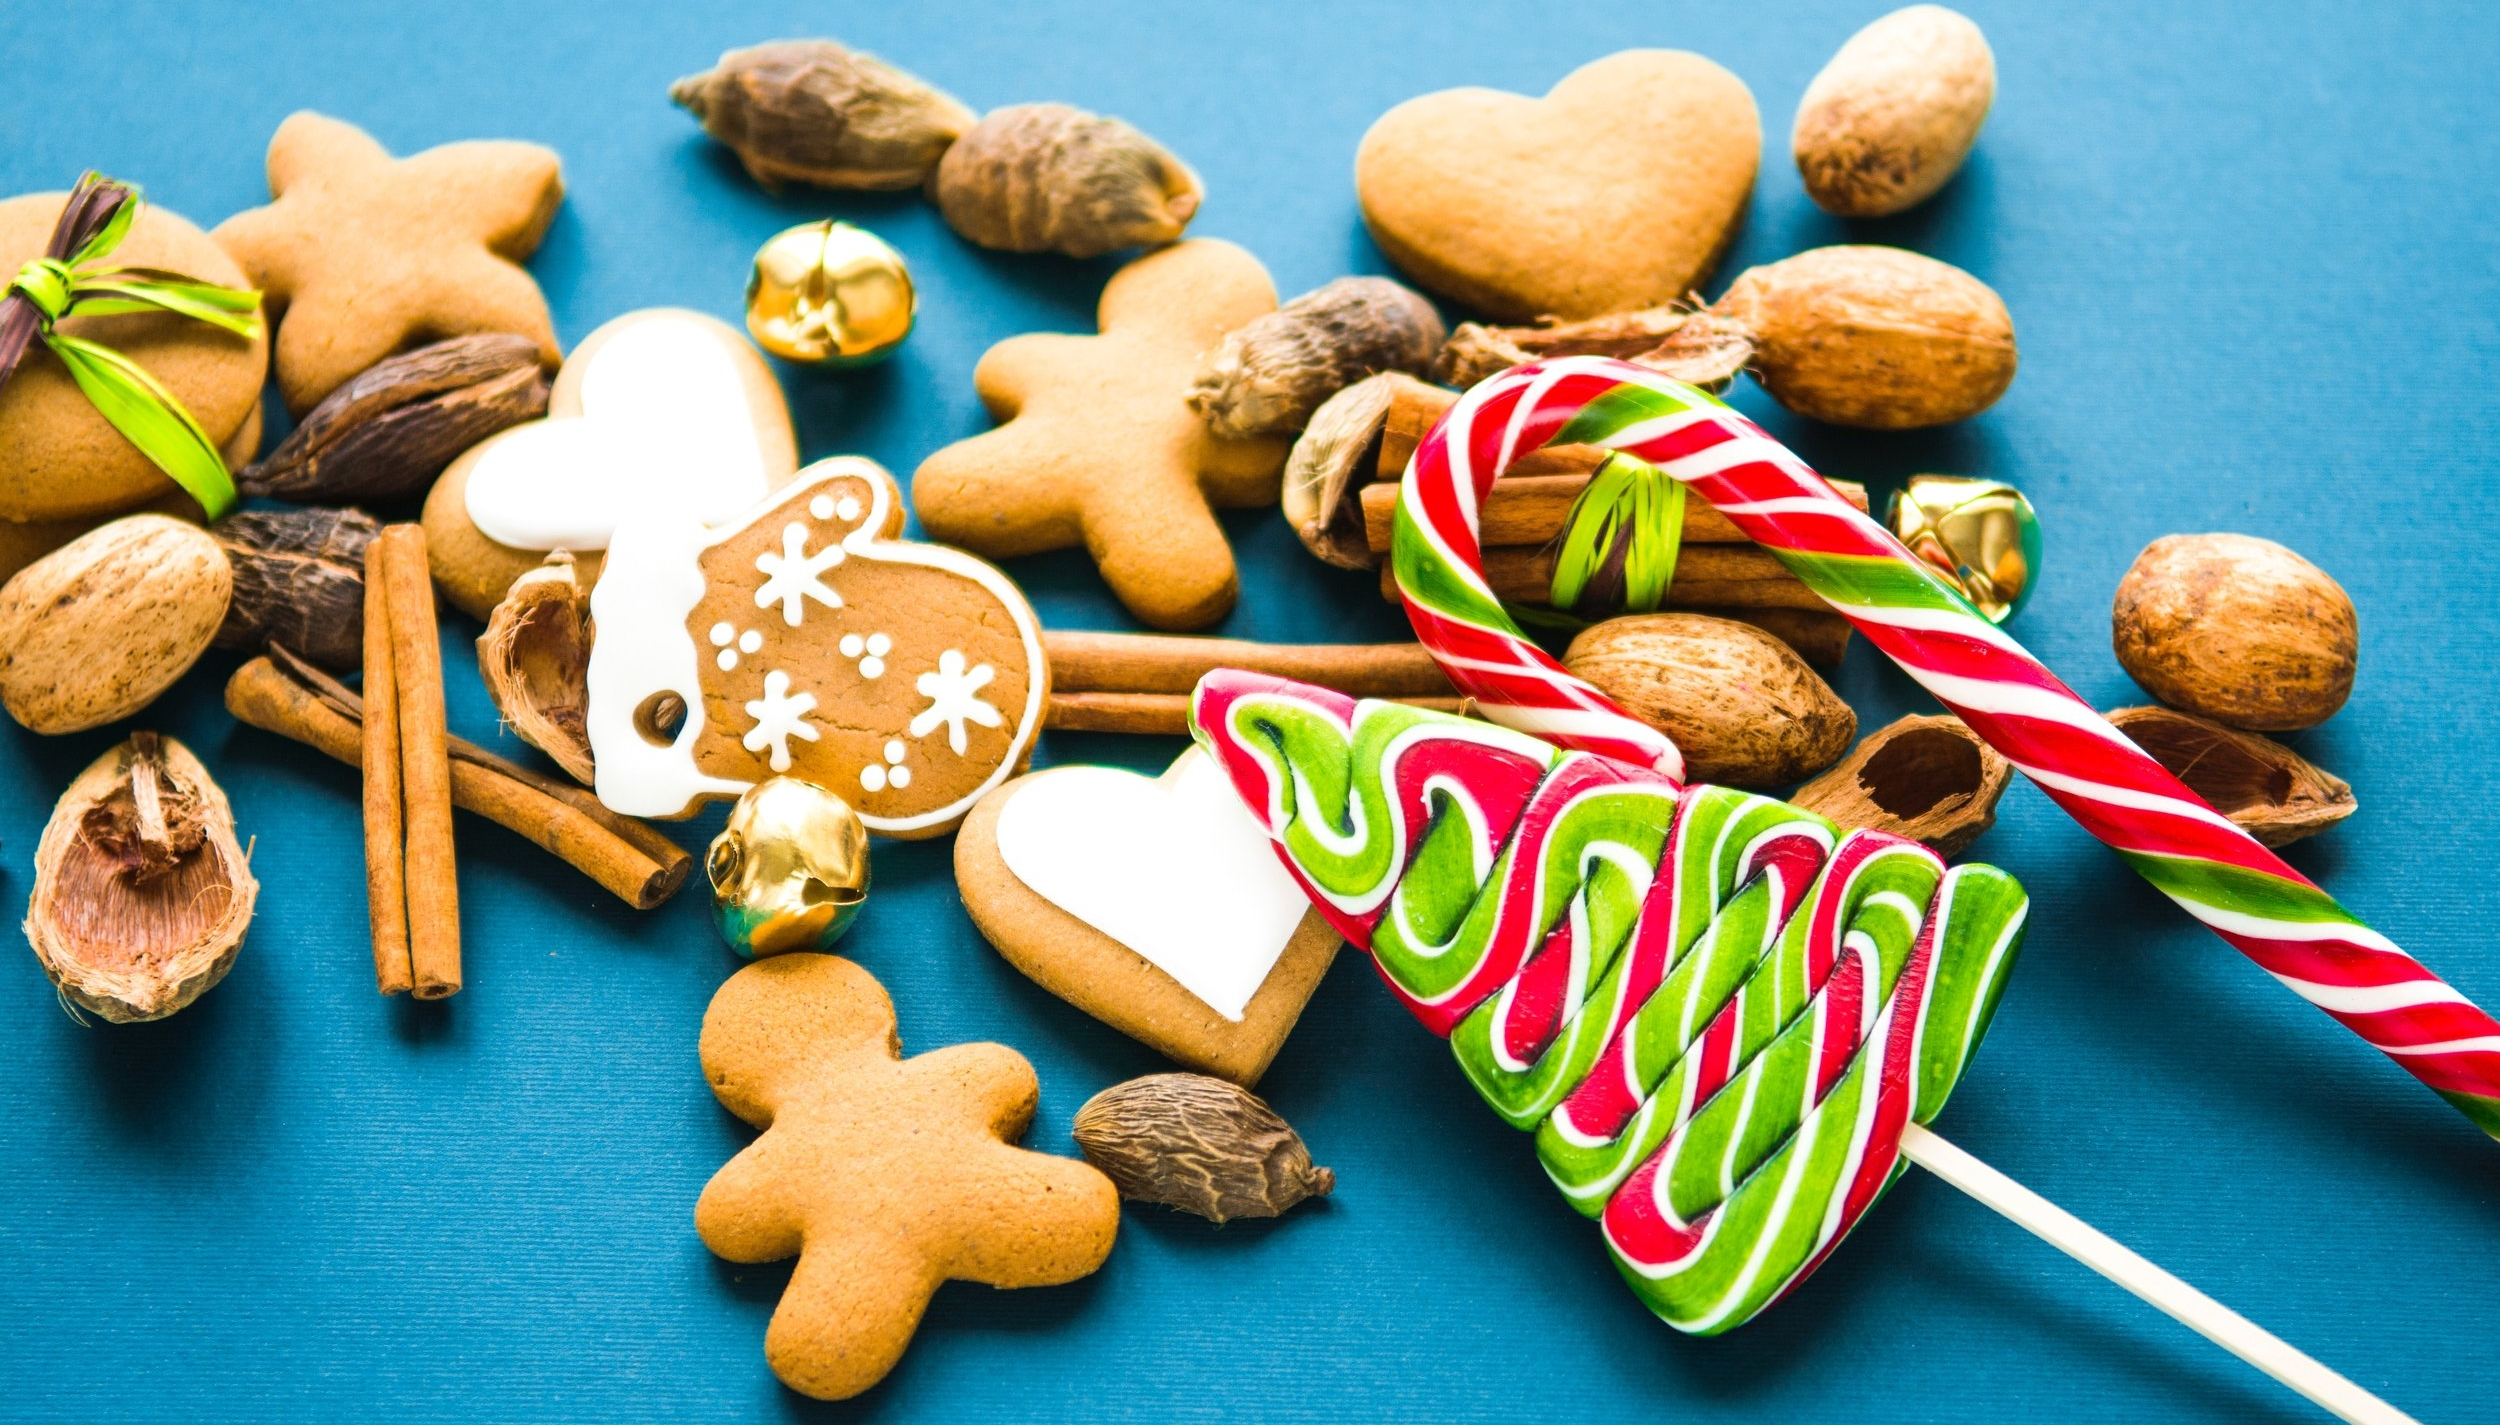 Choose Your Holiday Events and Holiday Treats wisely!!